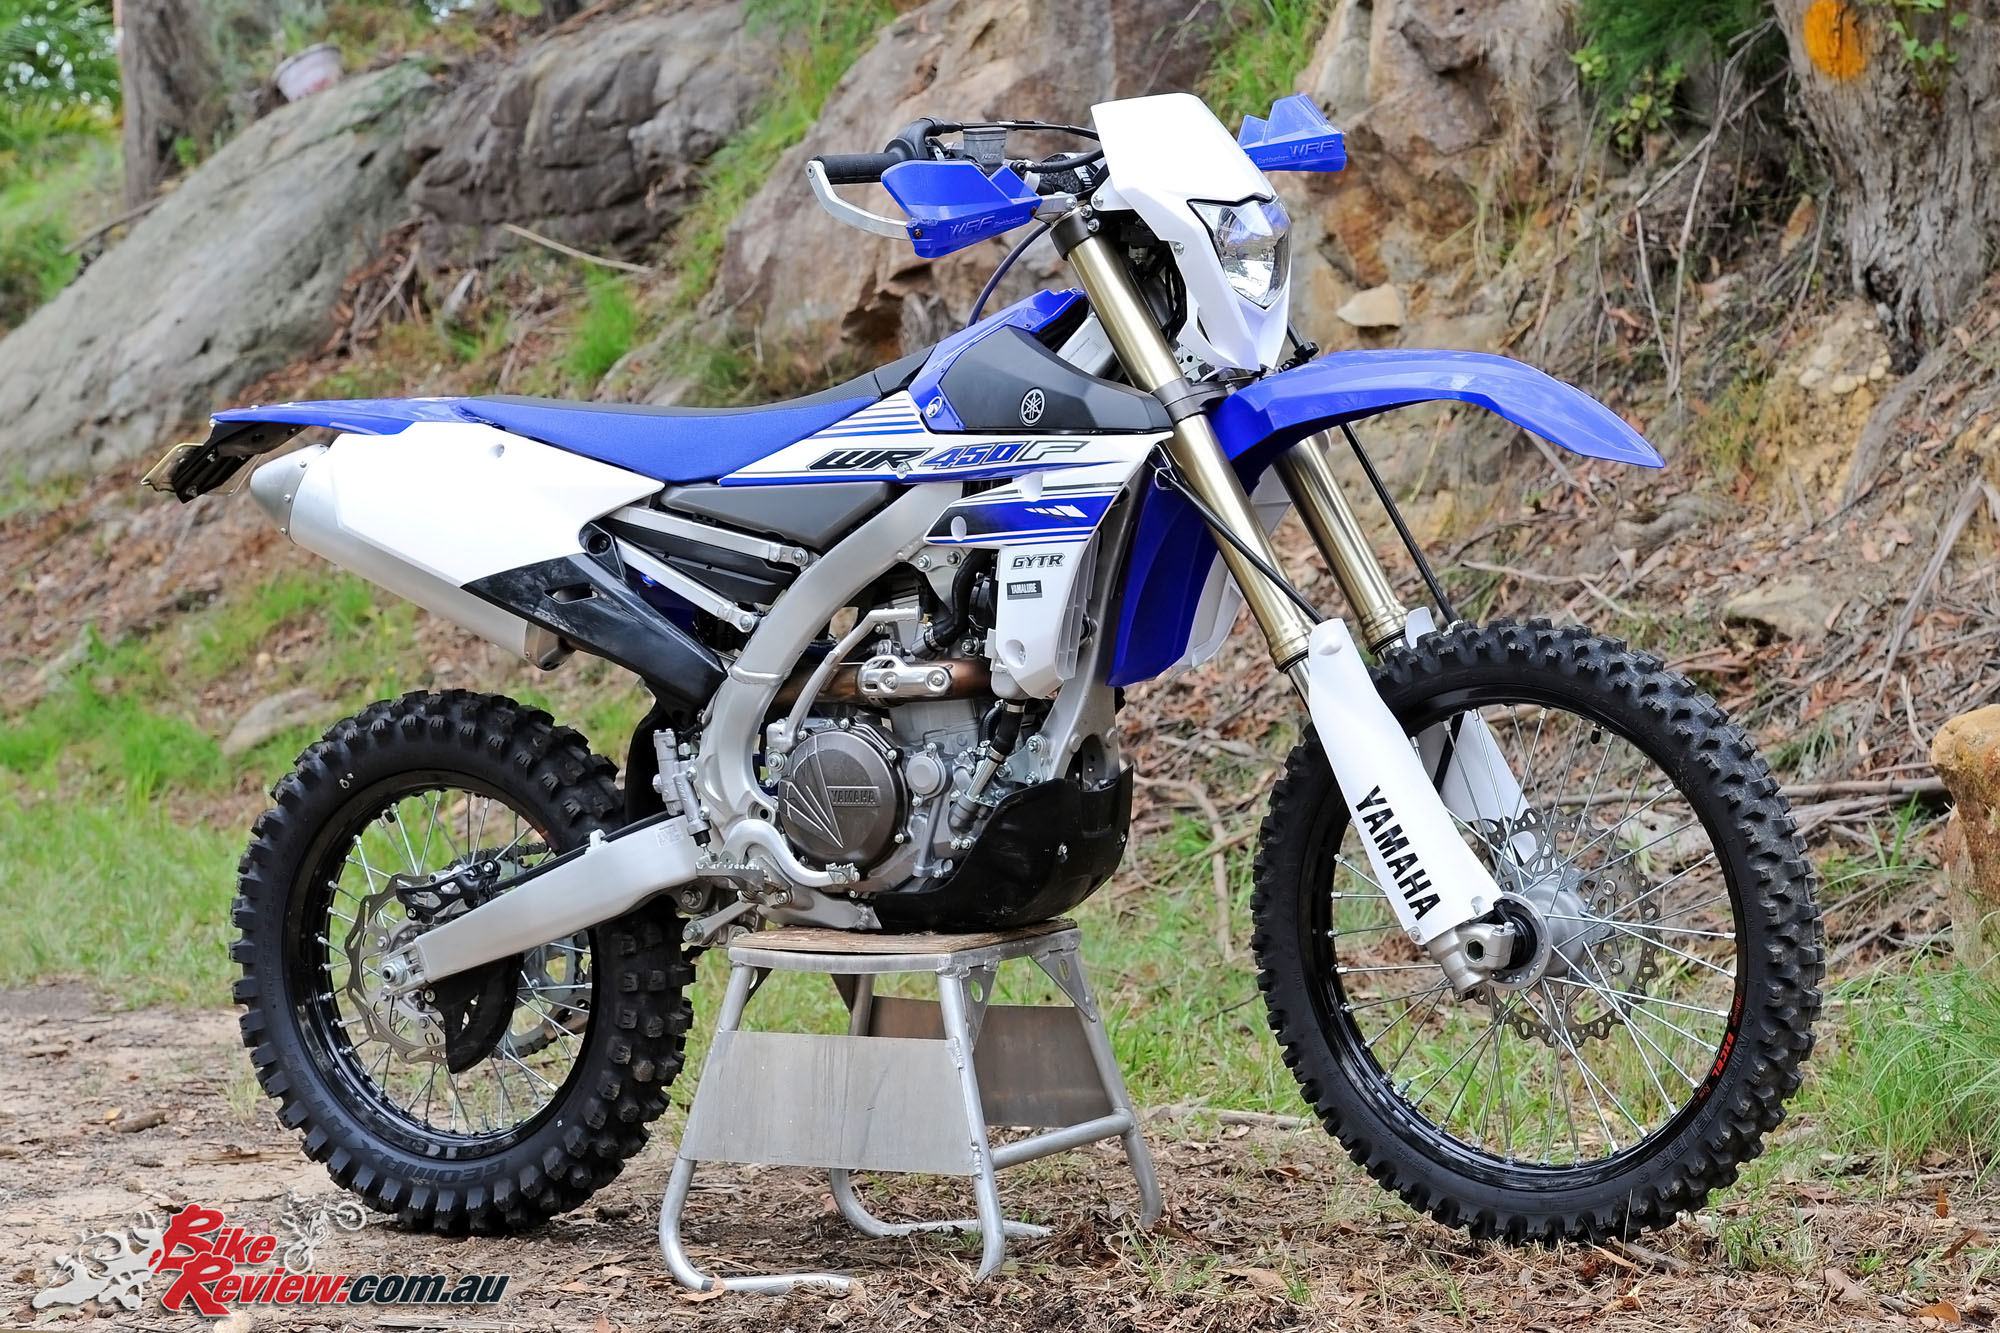 Yamaha Trail Bikes For Sale